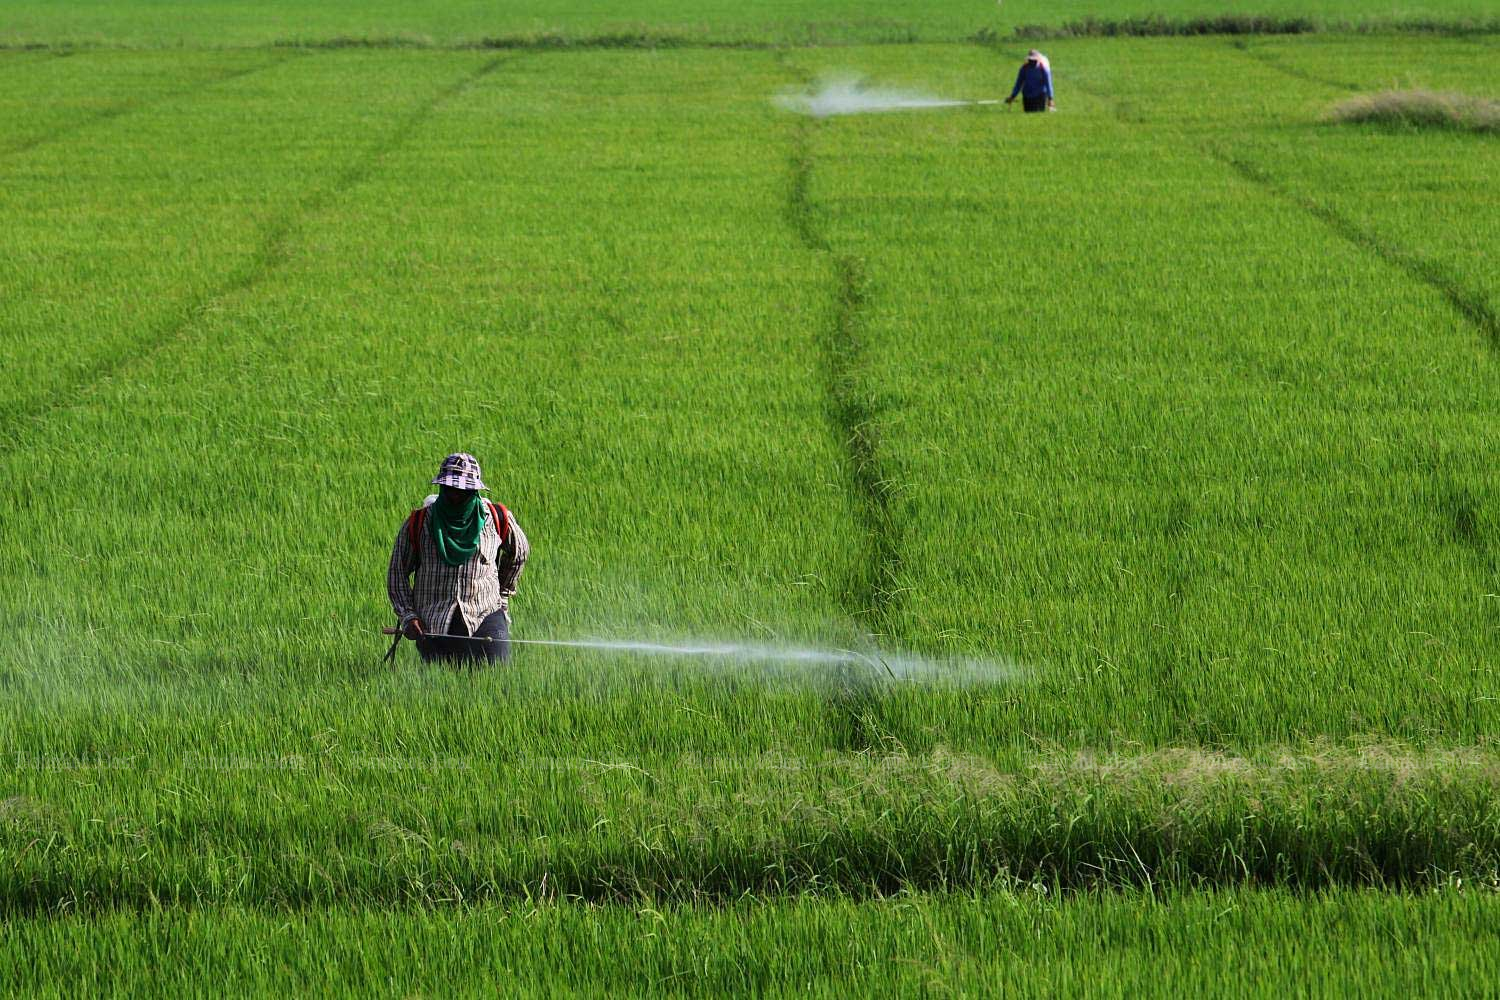 Farmers spray chemicals on a rice crop in Ayutthaya. (Bangkok Post file photo)